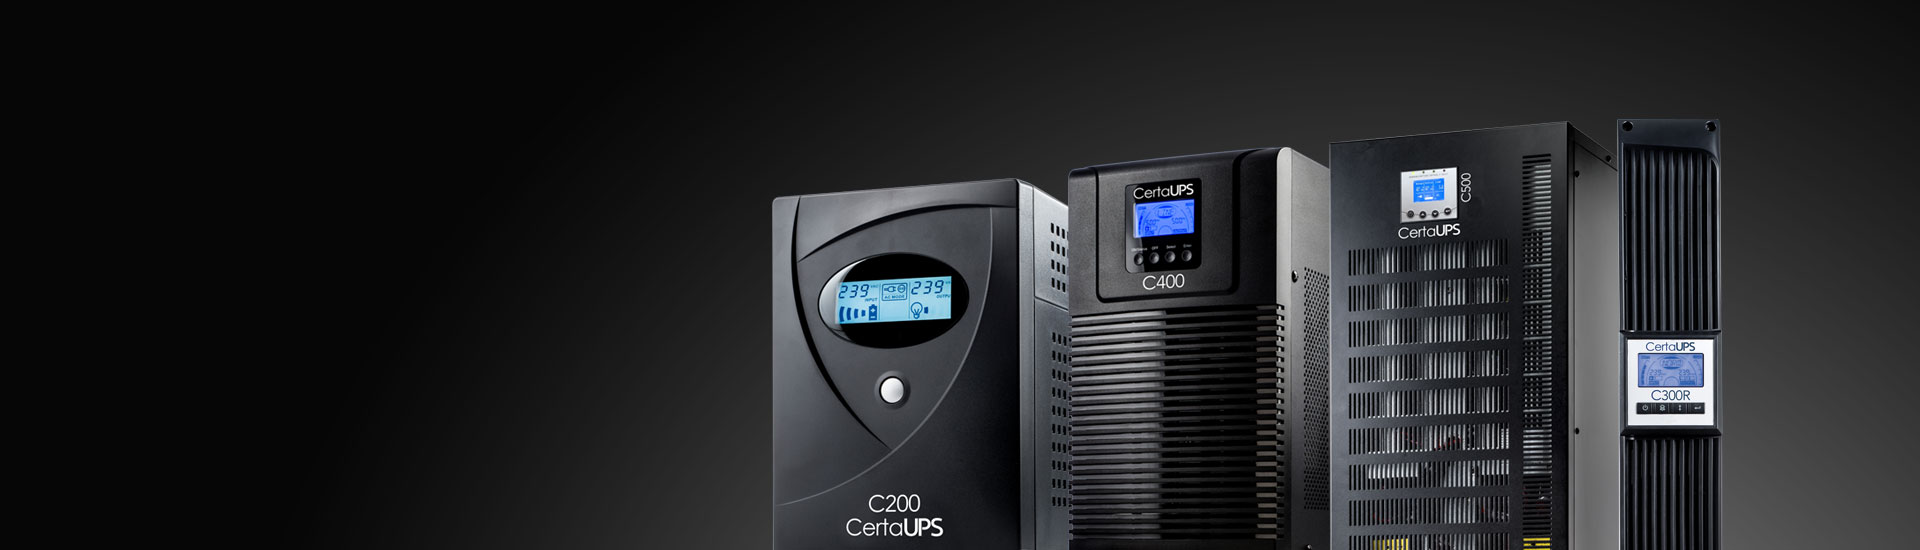 CertaUPS - Uninterruptible Power Supplies, UPS Power Systems for Servers & Edge Computing